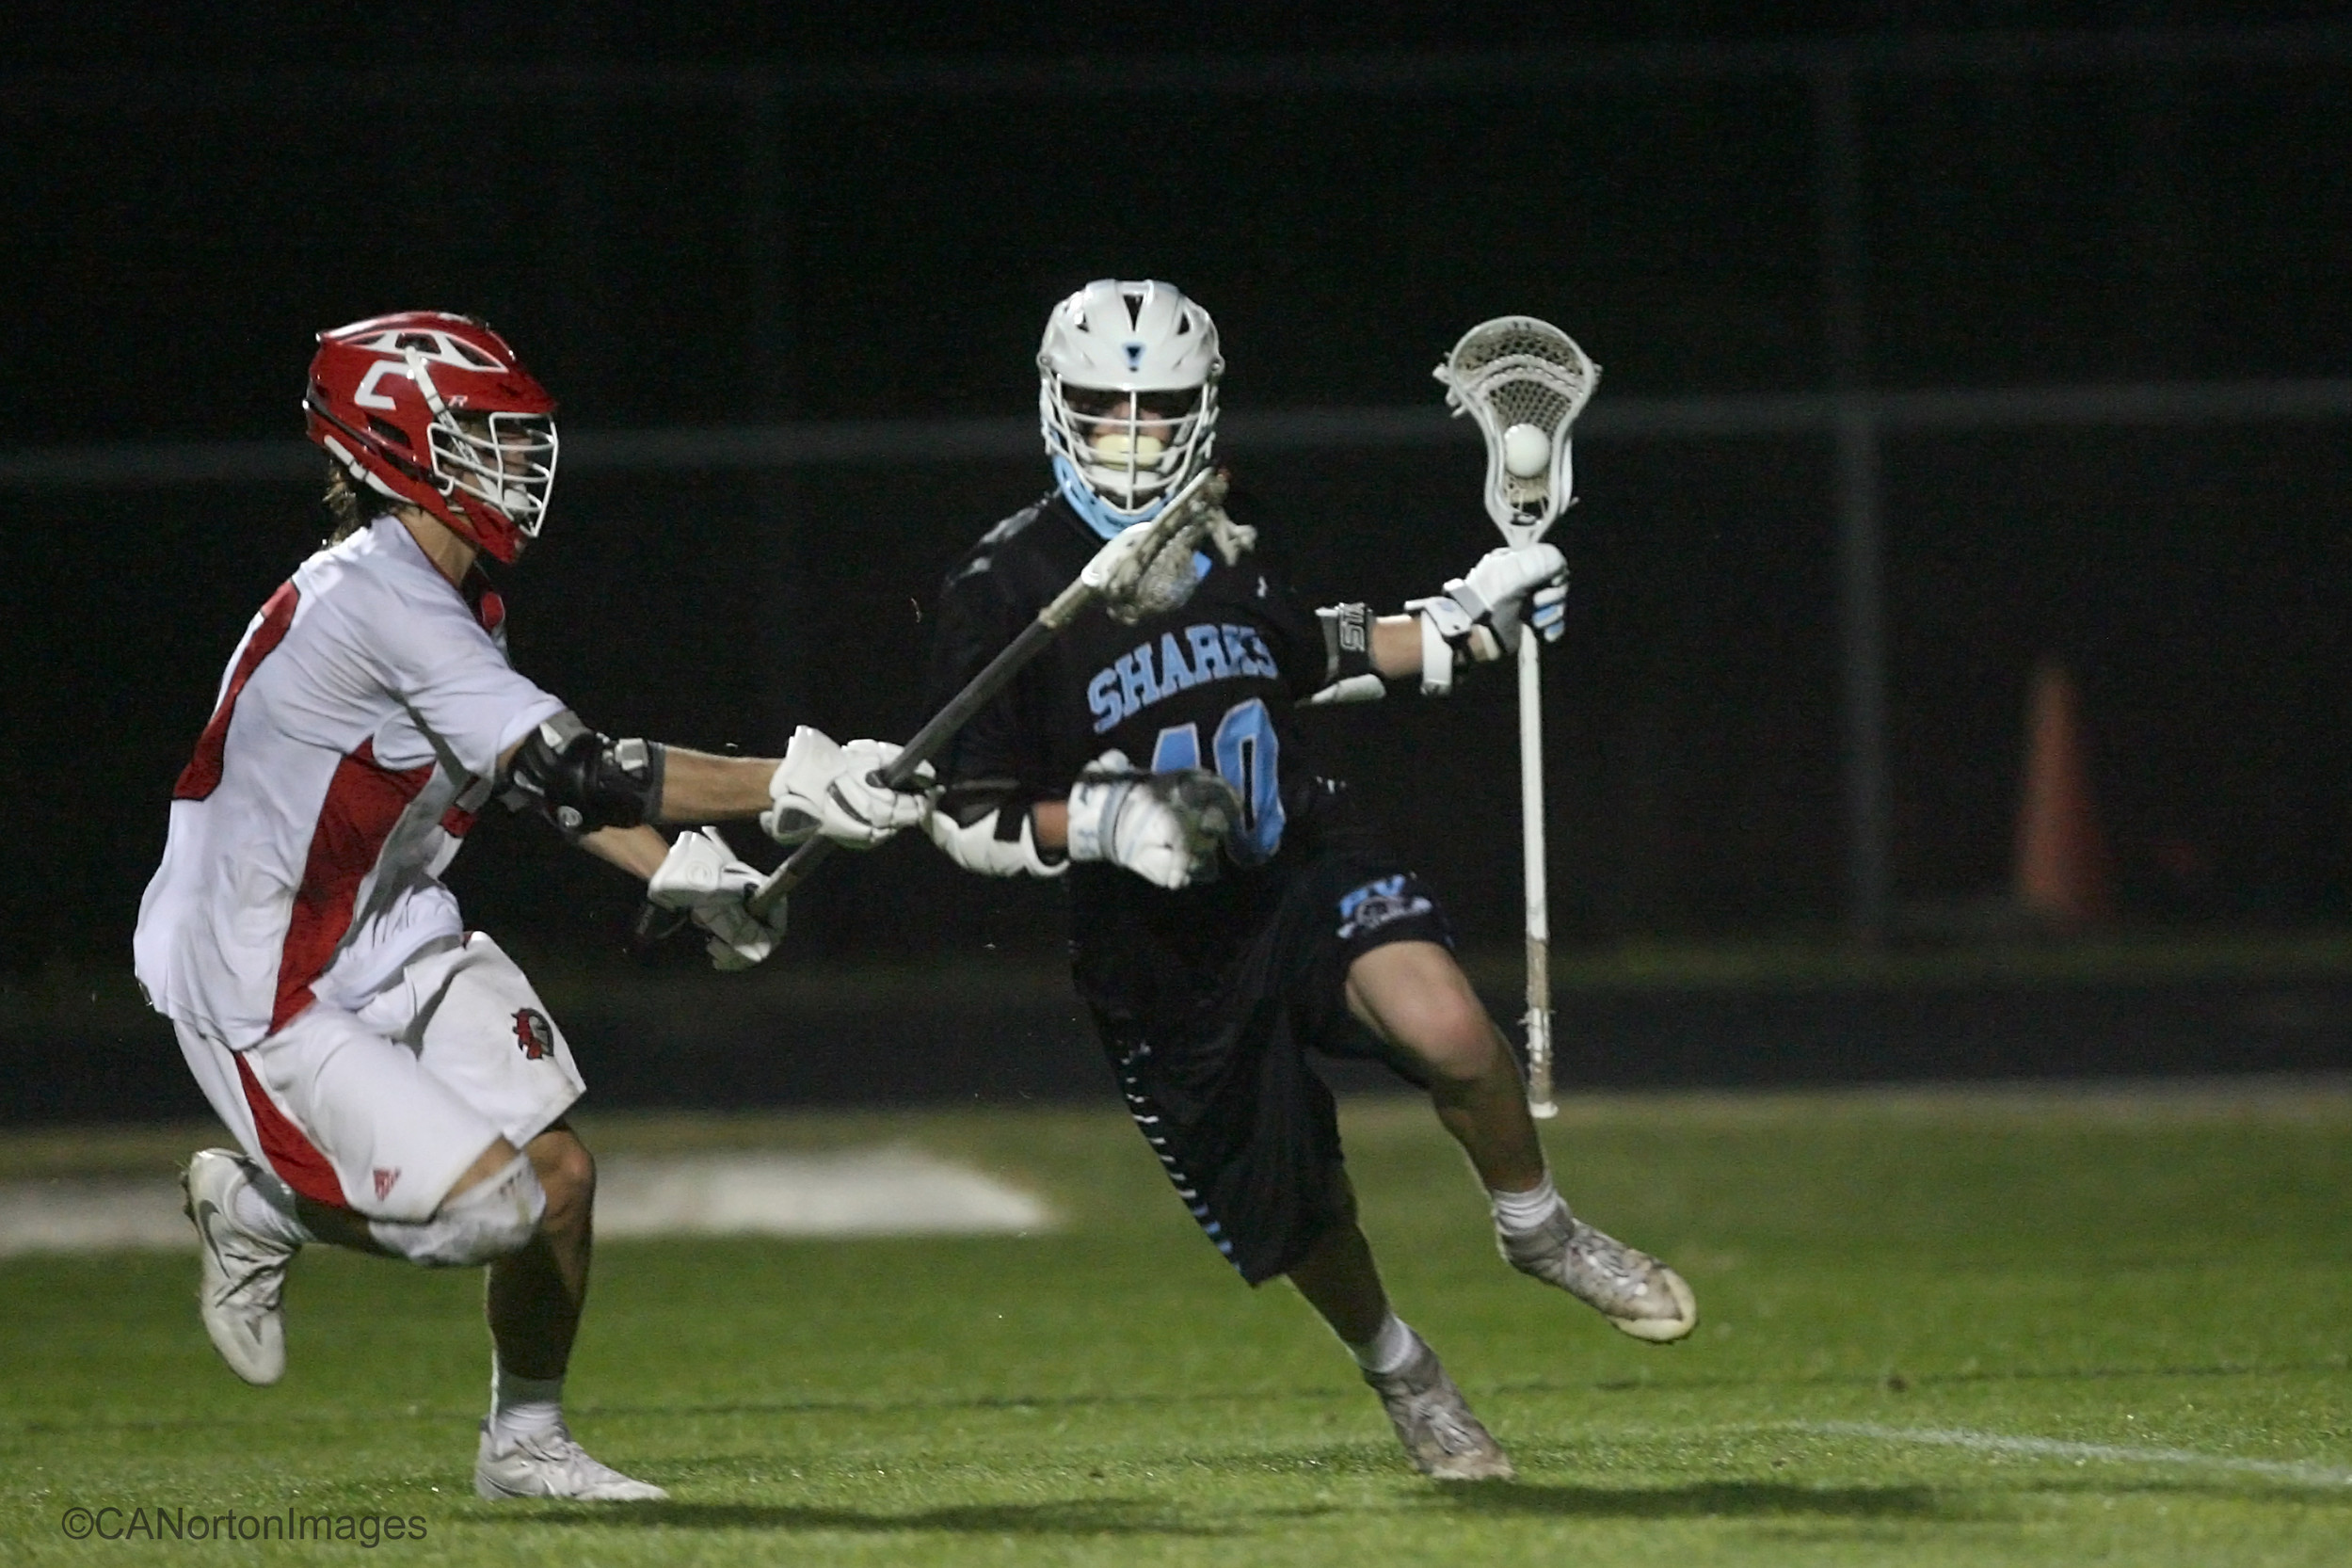 #40, Dylan Hess of Ponte Vedra drives past a Knight defender.